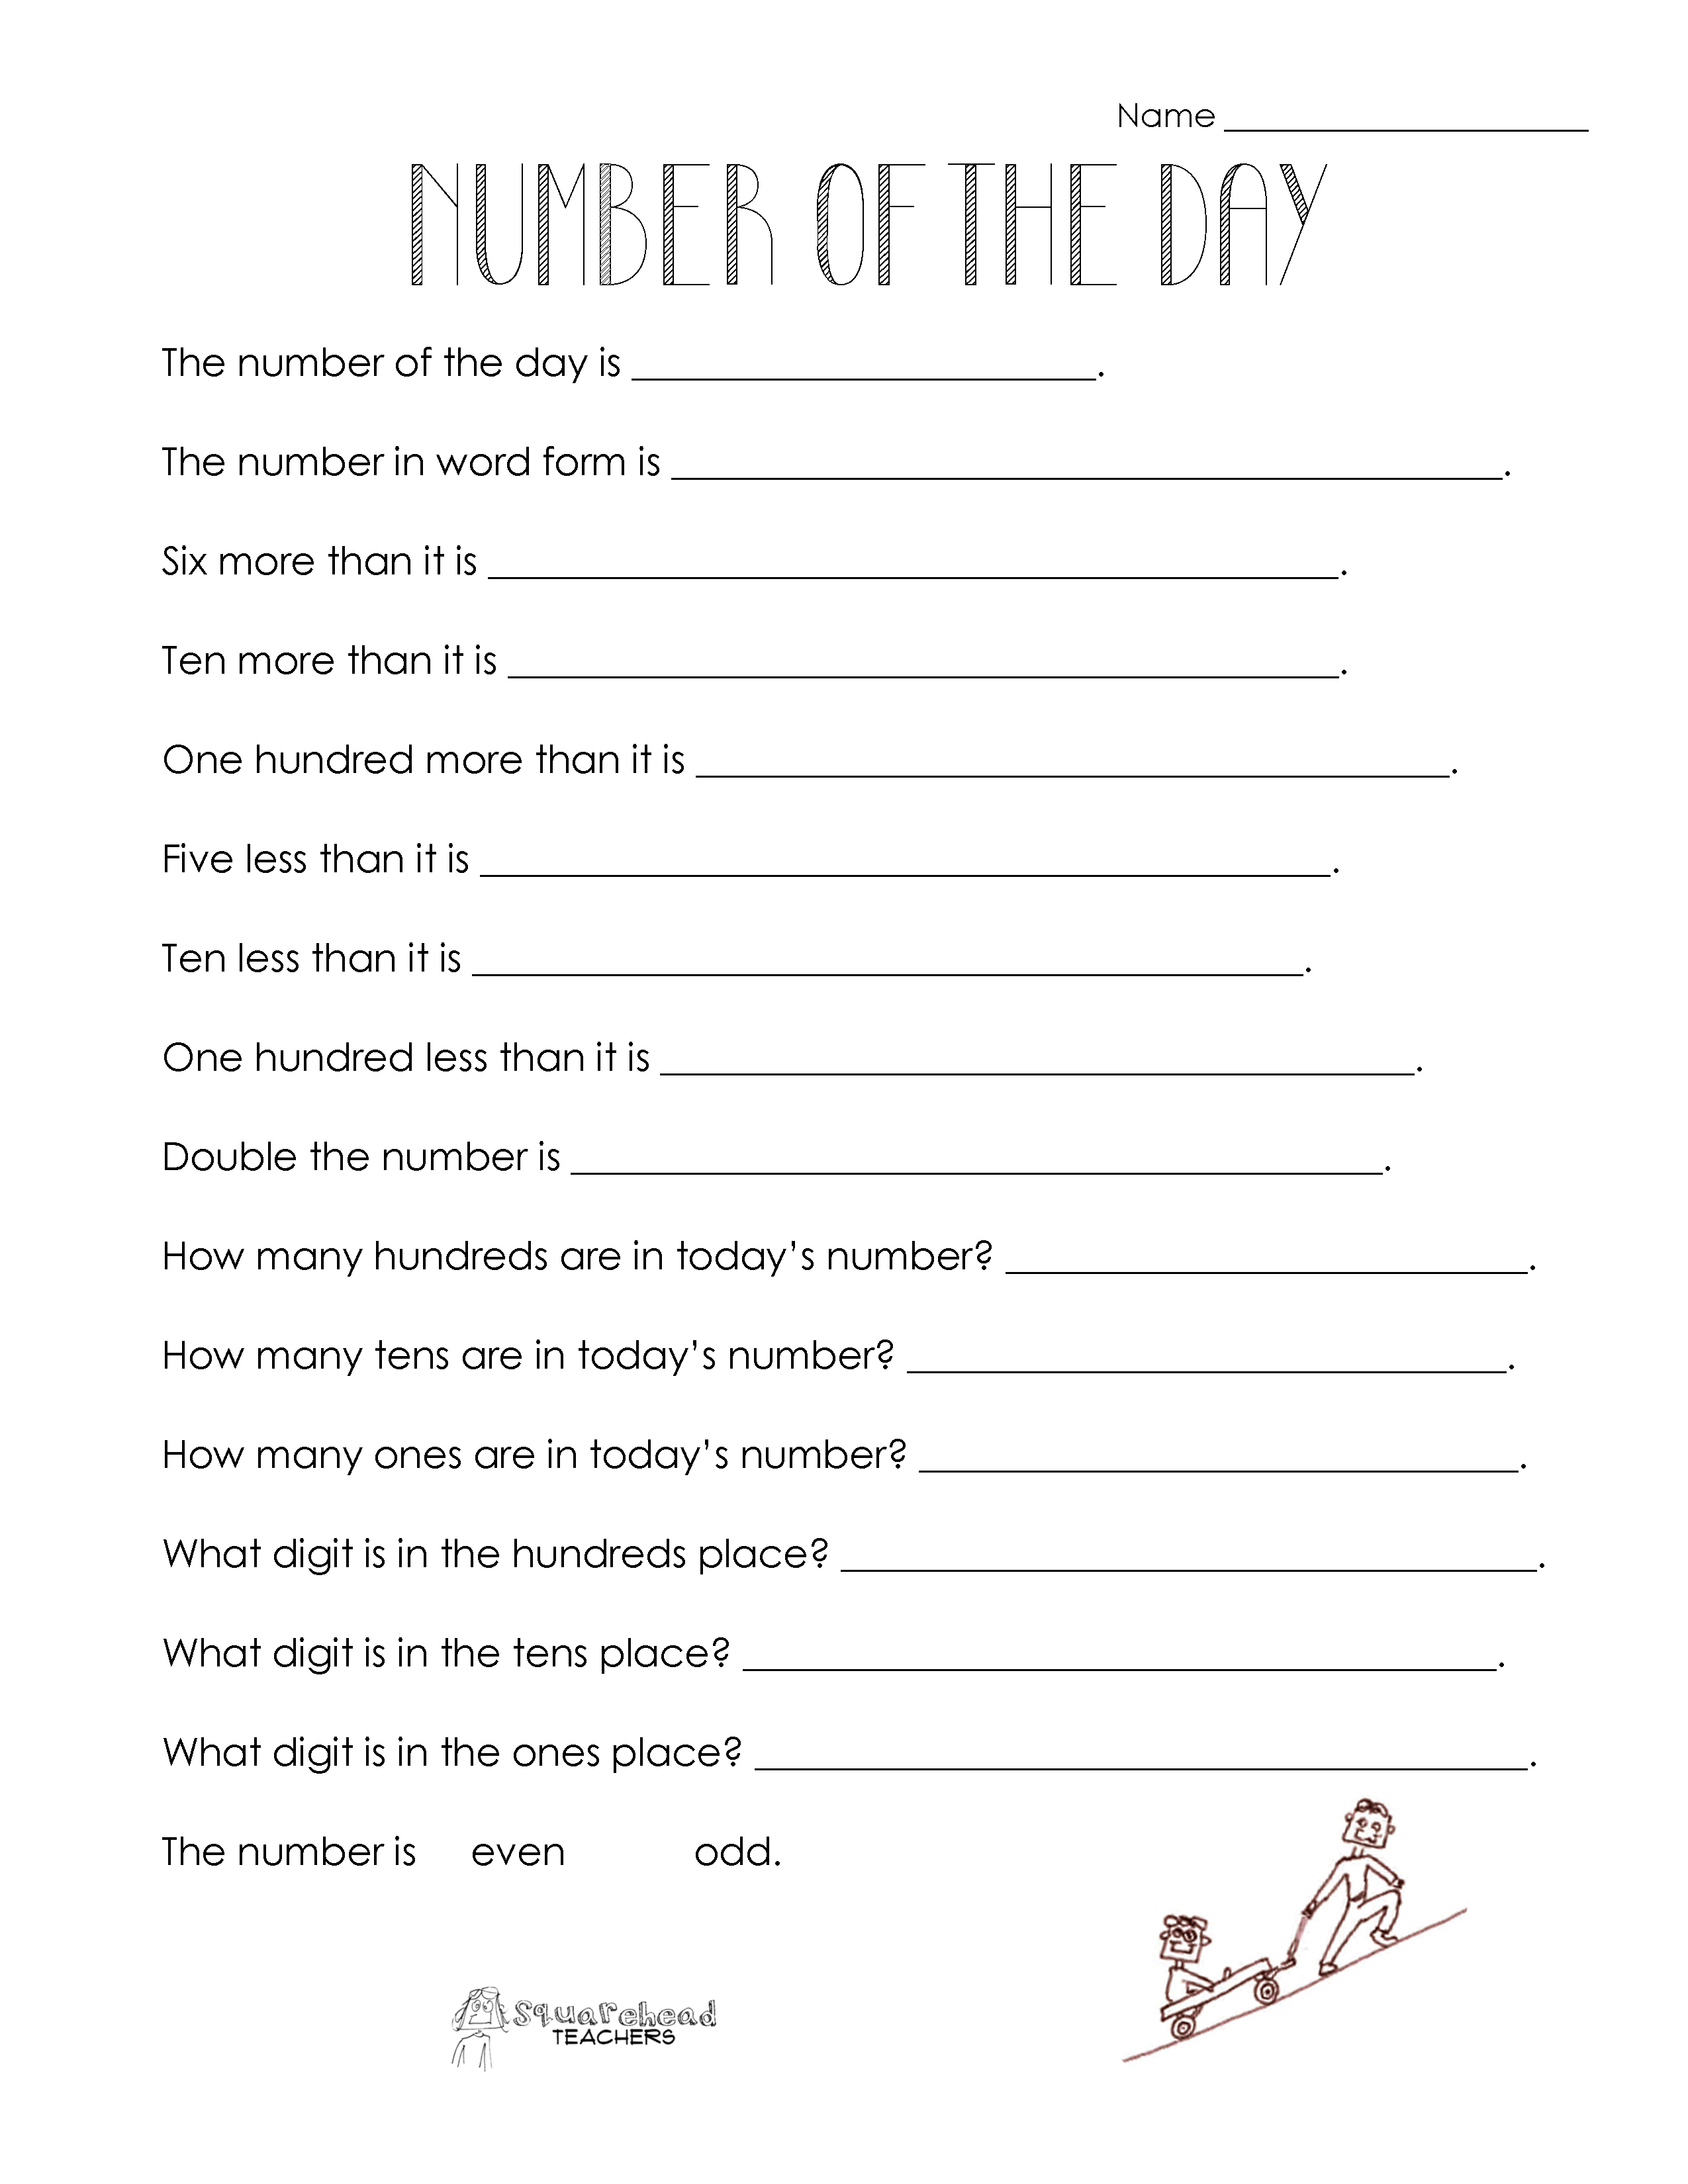 Number Of The Day (Worksheet Collection) | Squarehead Teachers - Free Printable Number Of The Day Worksheets